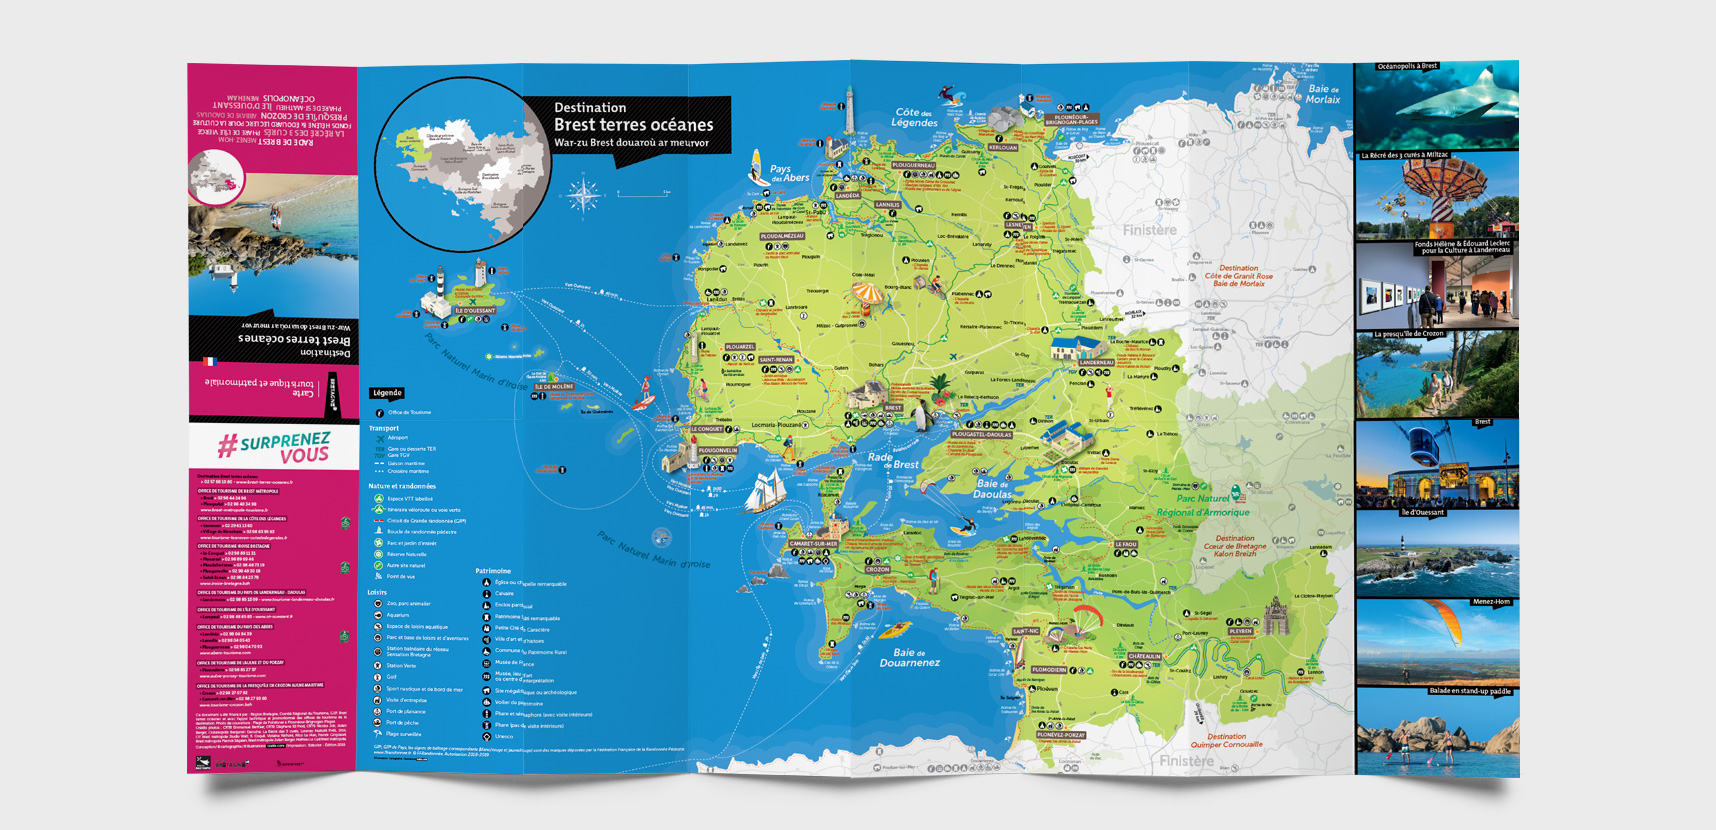 IZATIS_CRTB_carte_destination_brest_recto